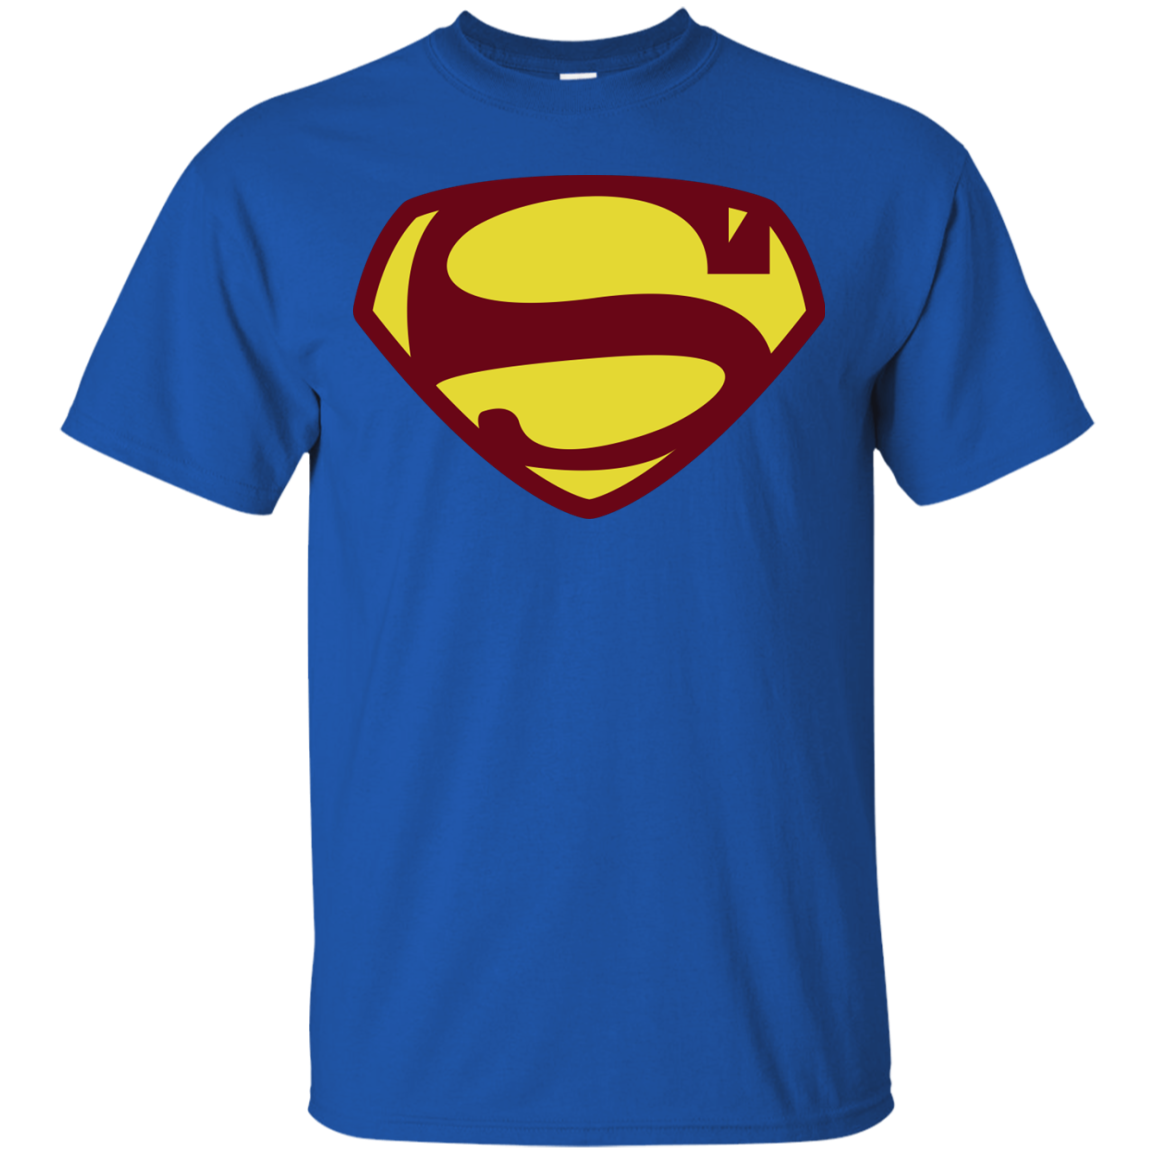 (S) George Reeves SUPERMAN T-Shirt Men